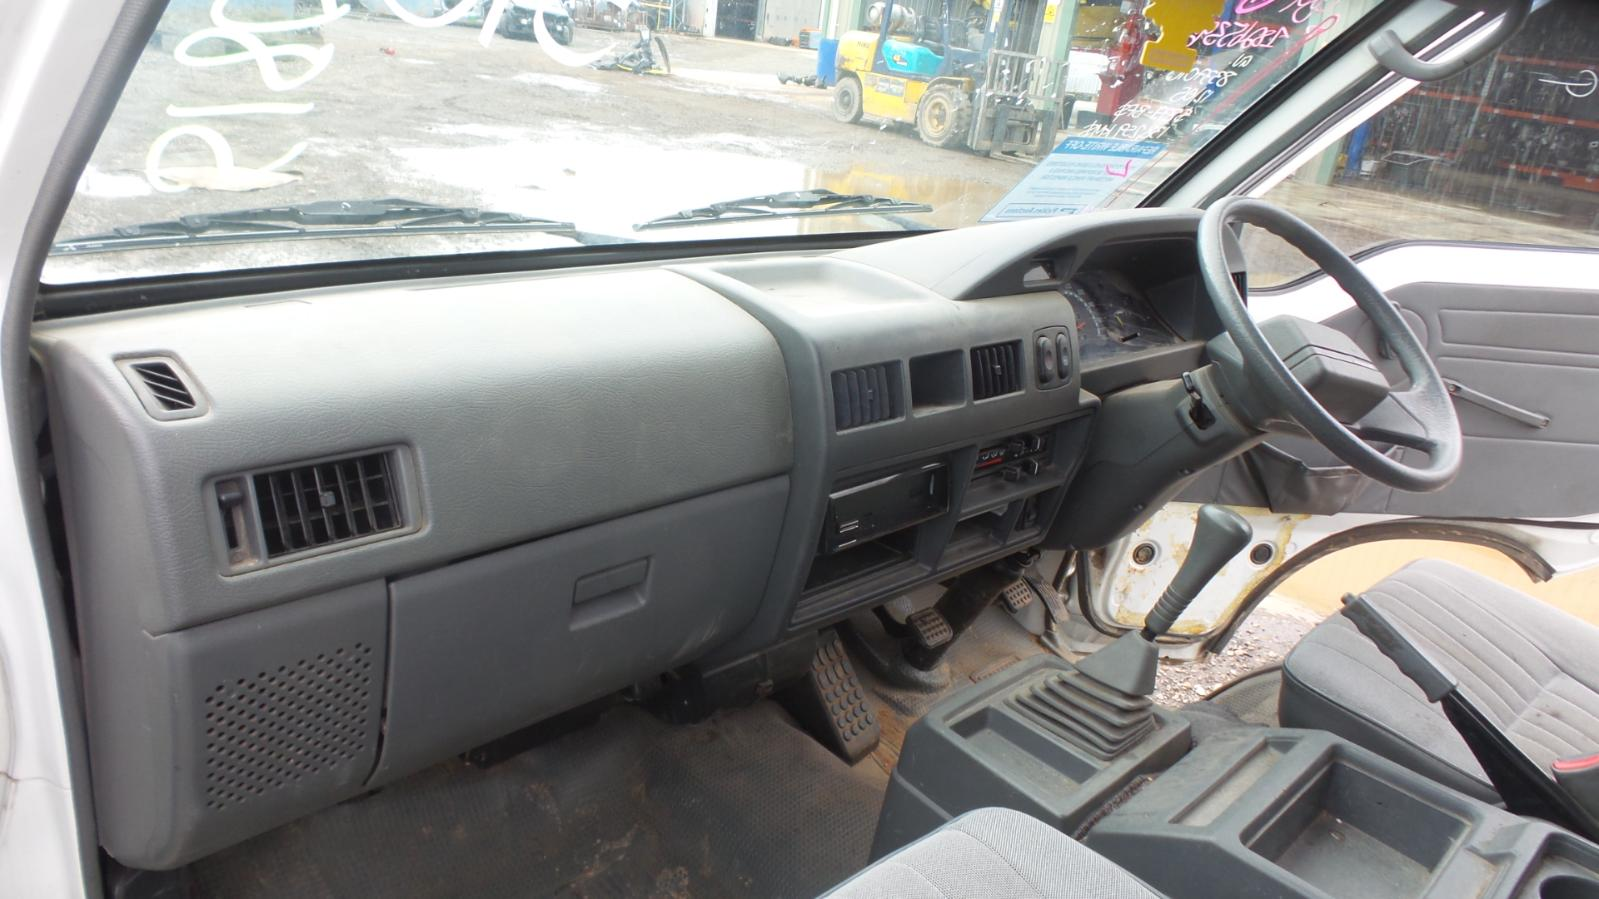 Image Is Loading MITSUBISHI L300 FUSE BOX UNDER DASH SJ SK